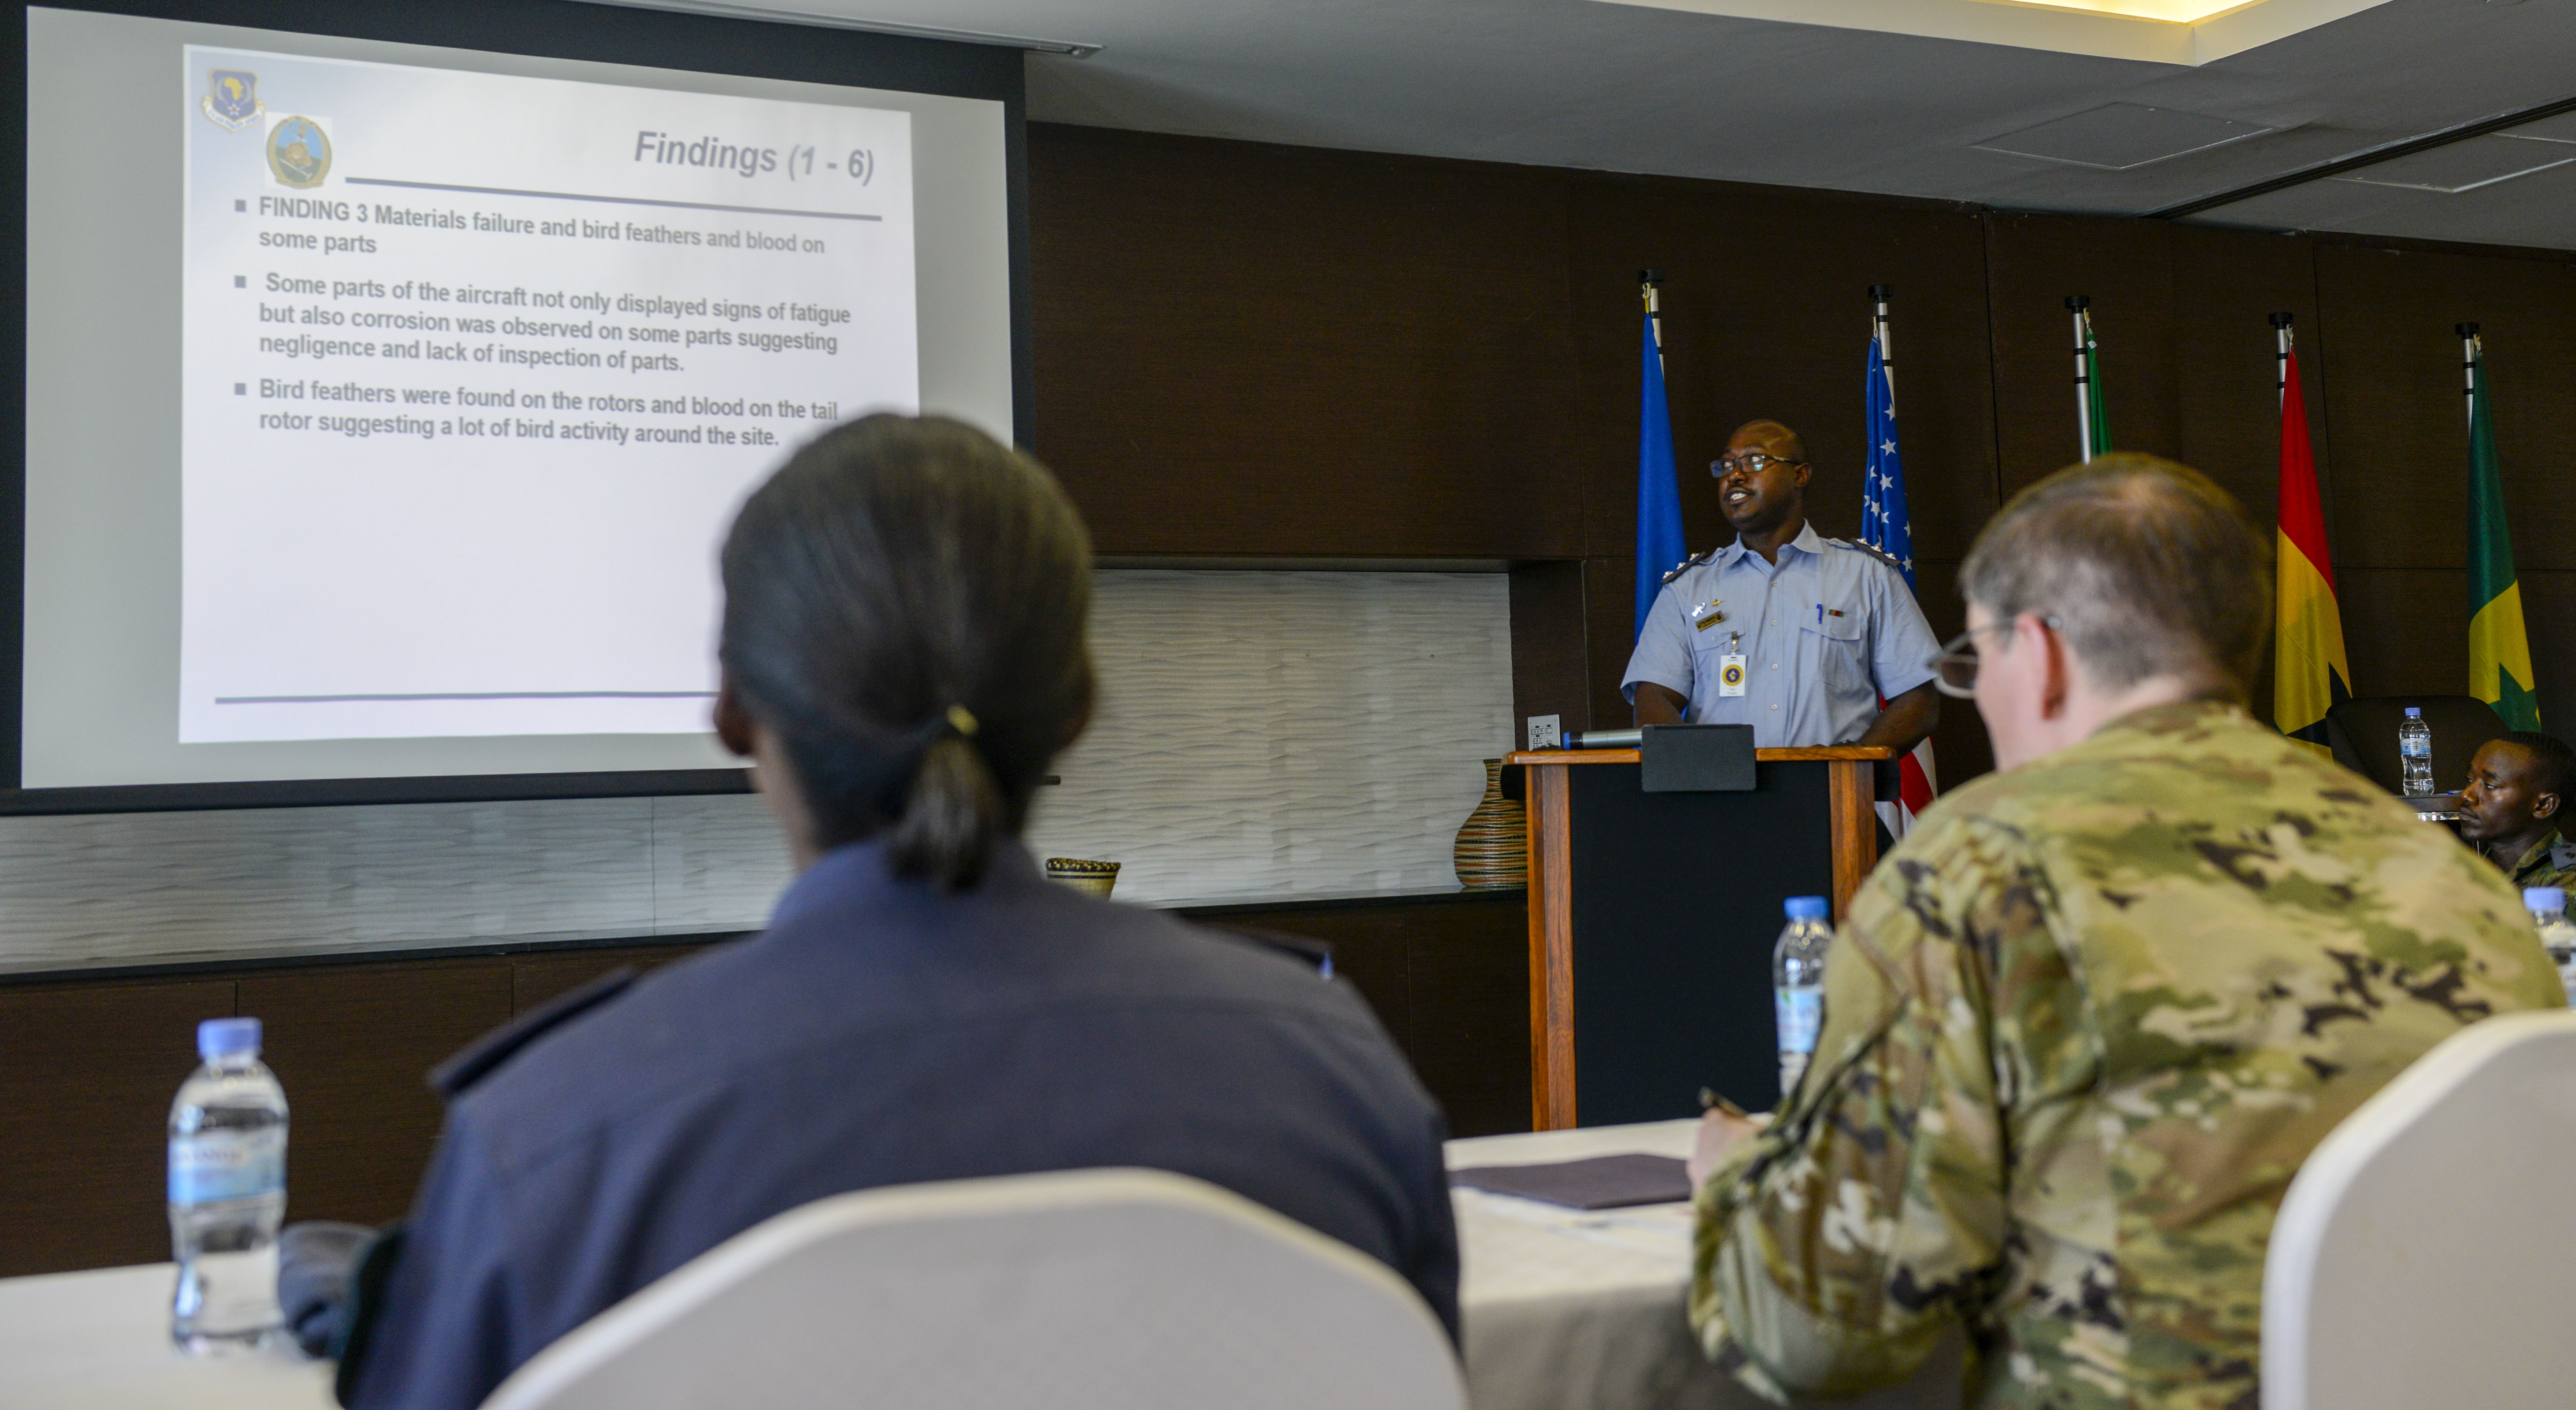 Participants in the African Partnership Flight Rwanda brief their safety investigation findings to a panel of U.S. Air Forces Africa and Rwanda Defence Force members in Kigali, Rwanda, March 8, 2019. Particiapants investigated a simulated aircraft crash as the culmination of the week's safety discussions. Hosted by U.S. Air Forces Africa and the Rwanda Defence Force, the weeklong event allowed 45 air force delegates from Rwanda, Cameroon, Ghana, Senegal, and Zambia to learn from and share ideas with each other and the U.S. Air Force about their safety programs. (U.S. Air Force photo by Tech. Sgt. Timothy Moore)